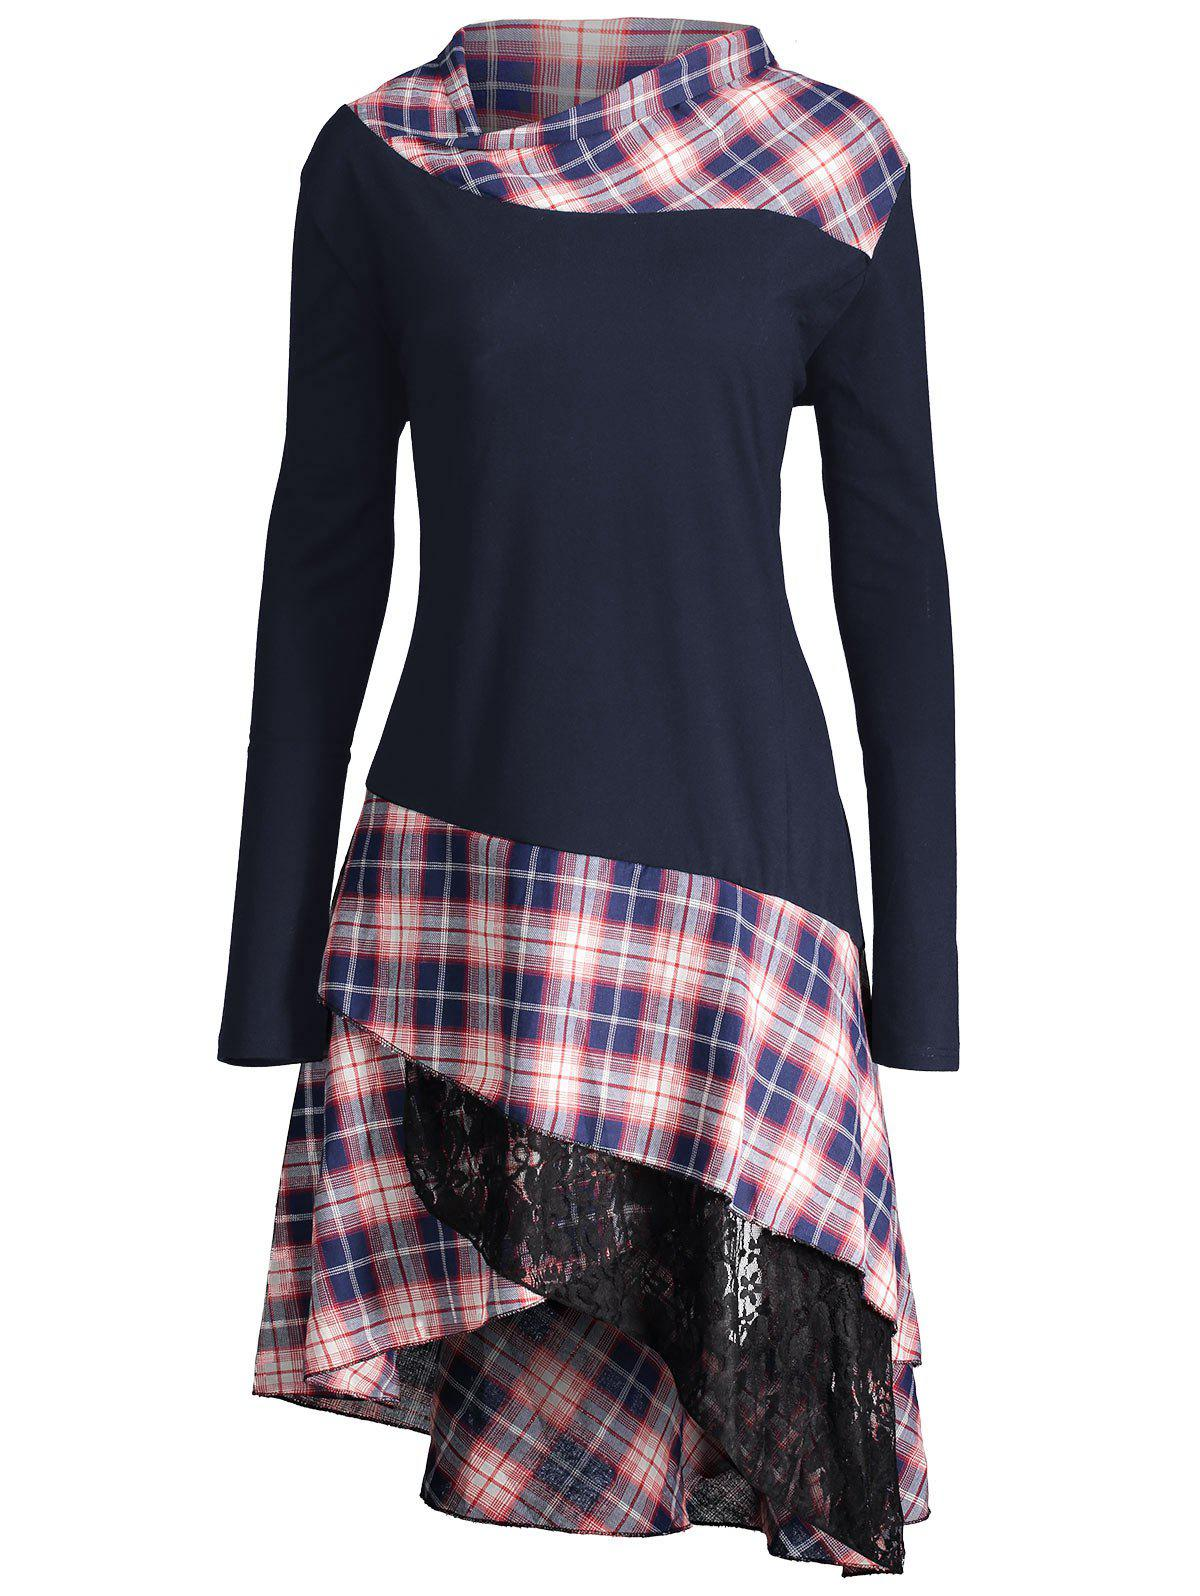 Long Plus Size Lace Plaid Panel TopWOMEN<br><br>Size: 3XL; Color: PURPLISH BLUE; Material: Polyester,Spandex; Shirt Length: Long; Sleeve Length: Full; Collar: Mock Neck; Style: Fashion; Season: Fall,Spring; Pattern Type: Plaid; Weight: 0.4100kg; Package Contents: 1 x Top;